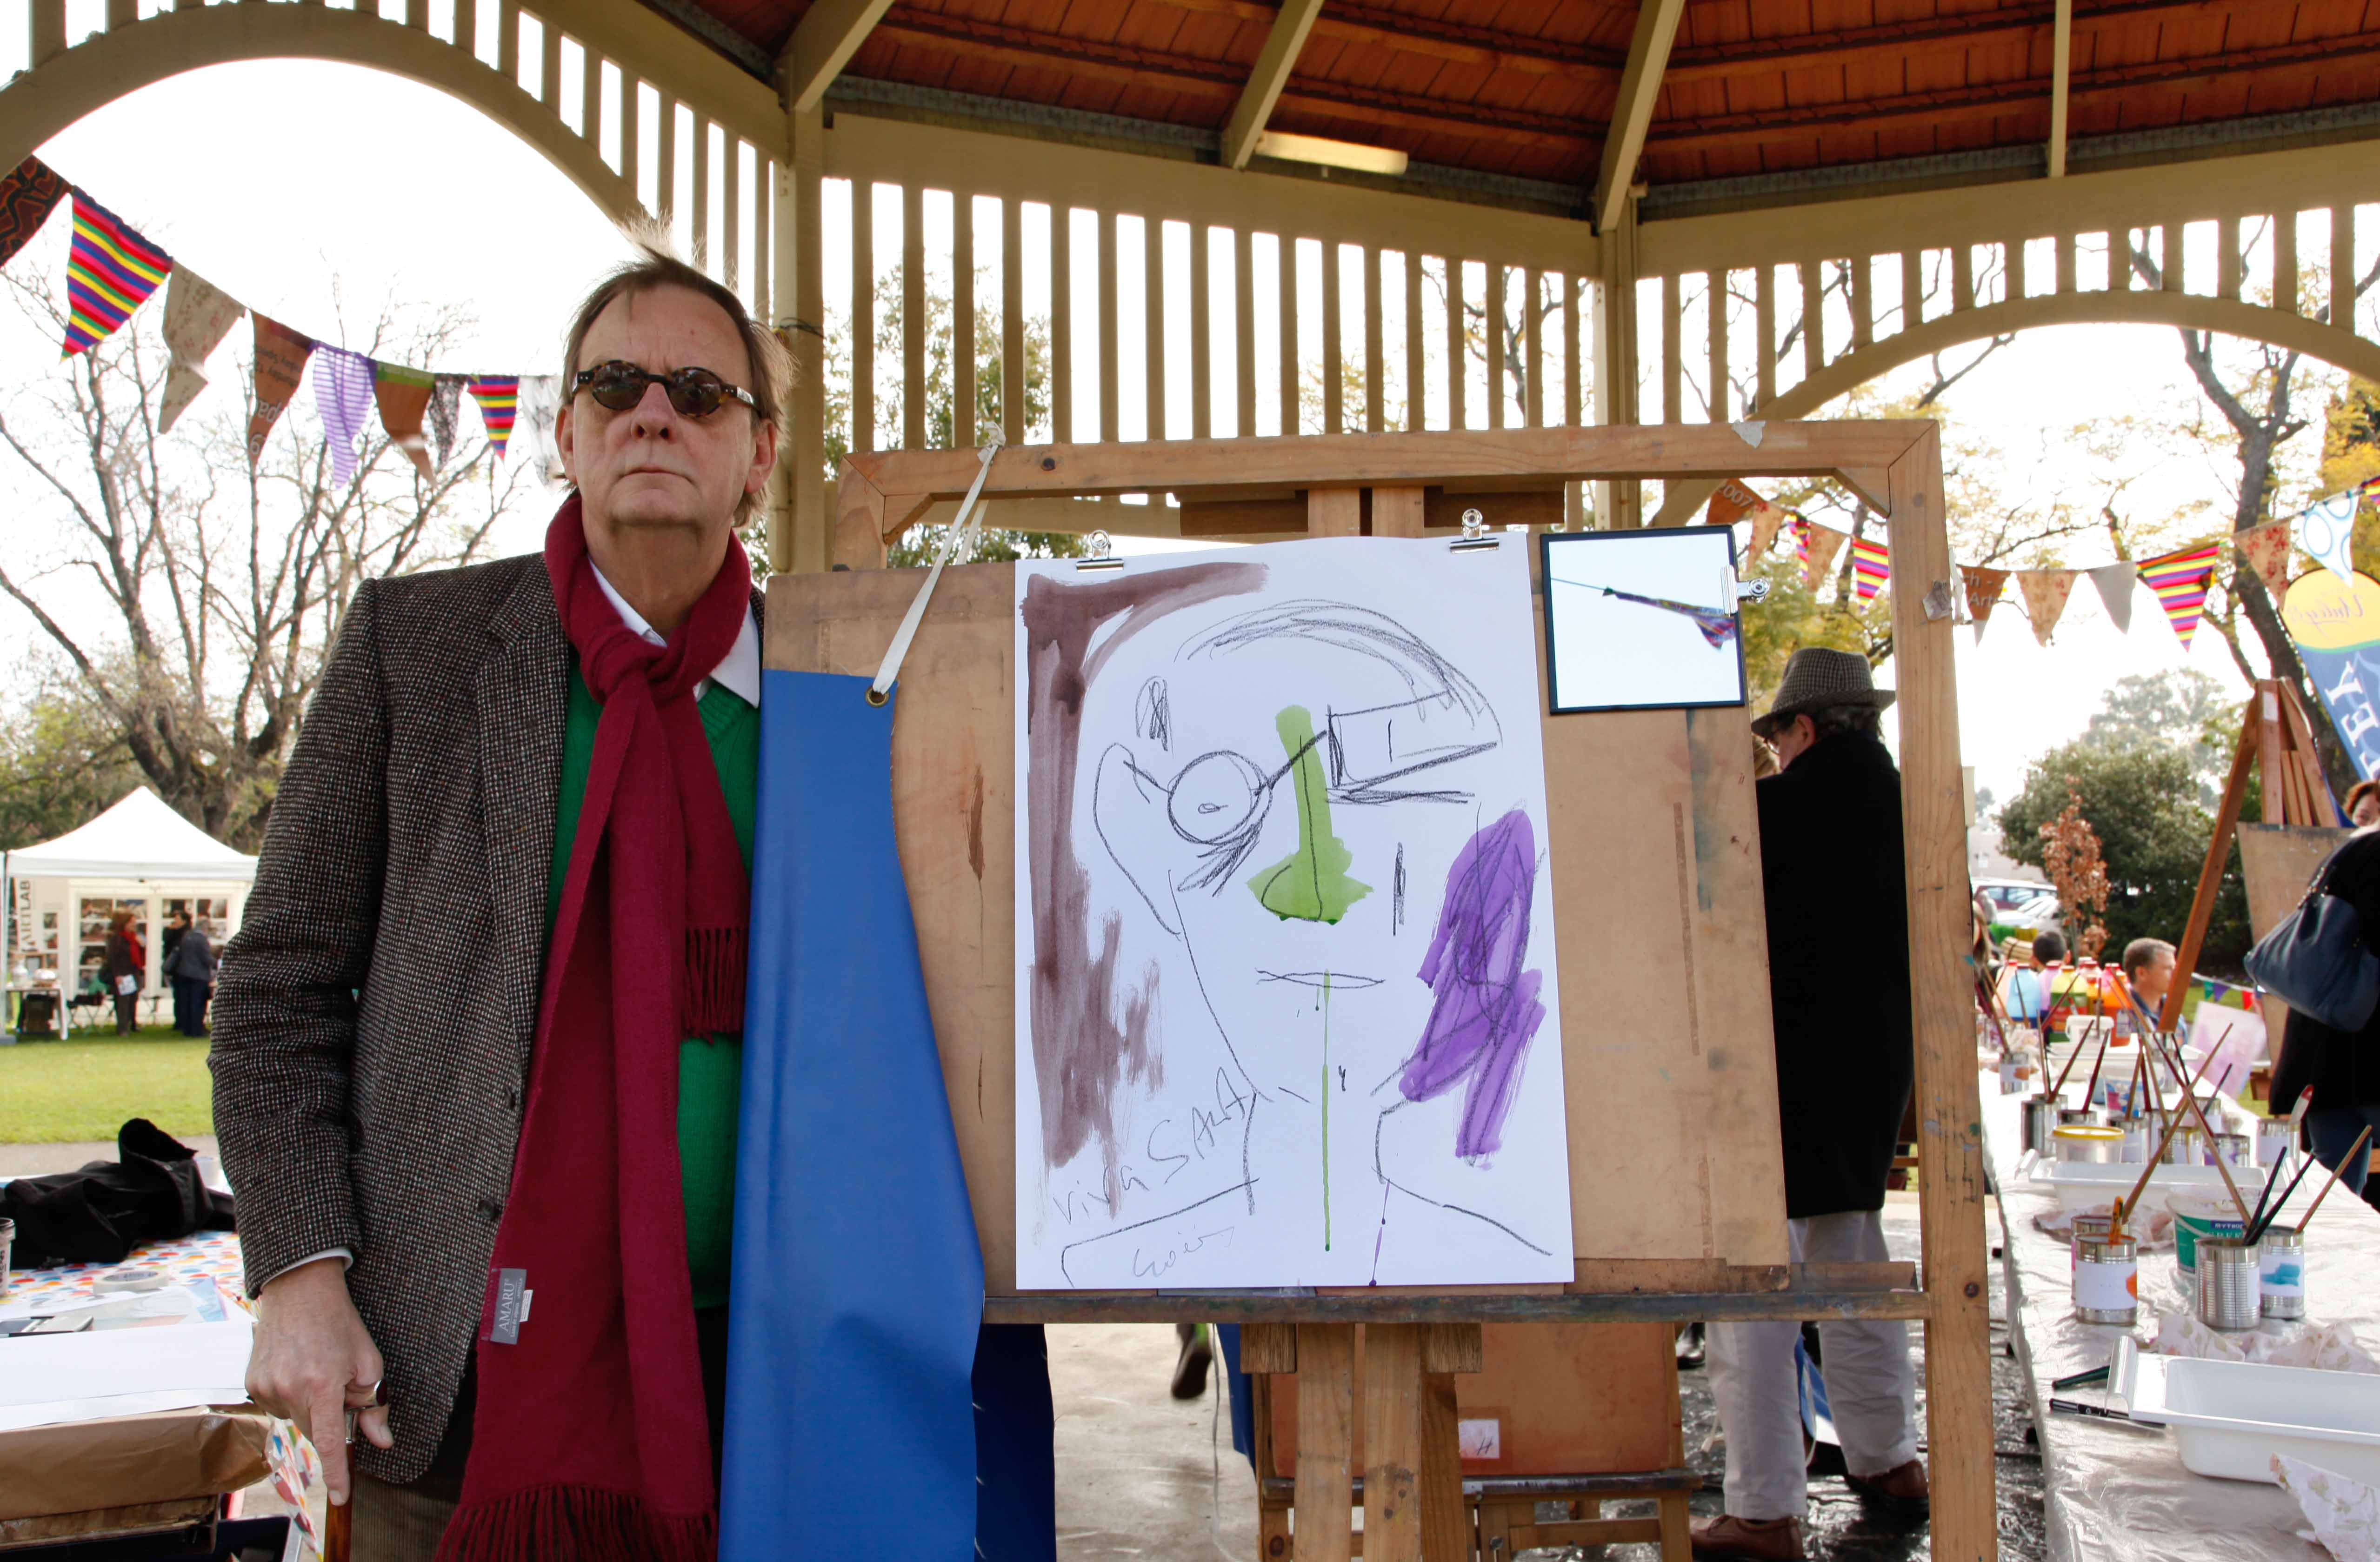 Peter Goers with his self portrait